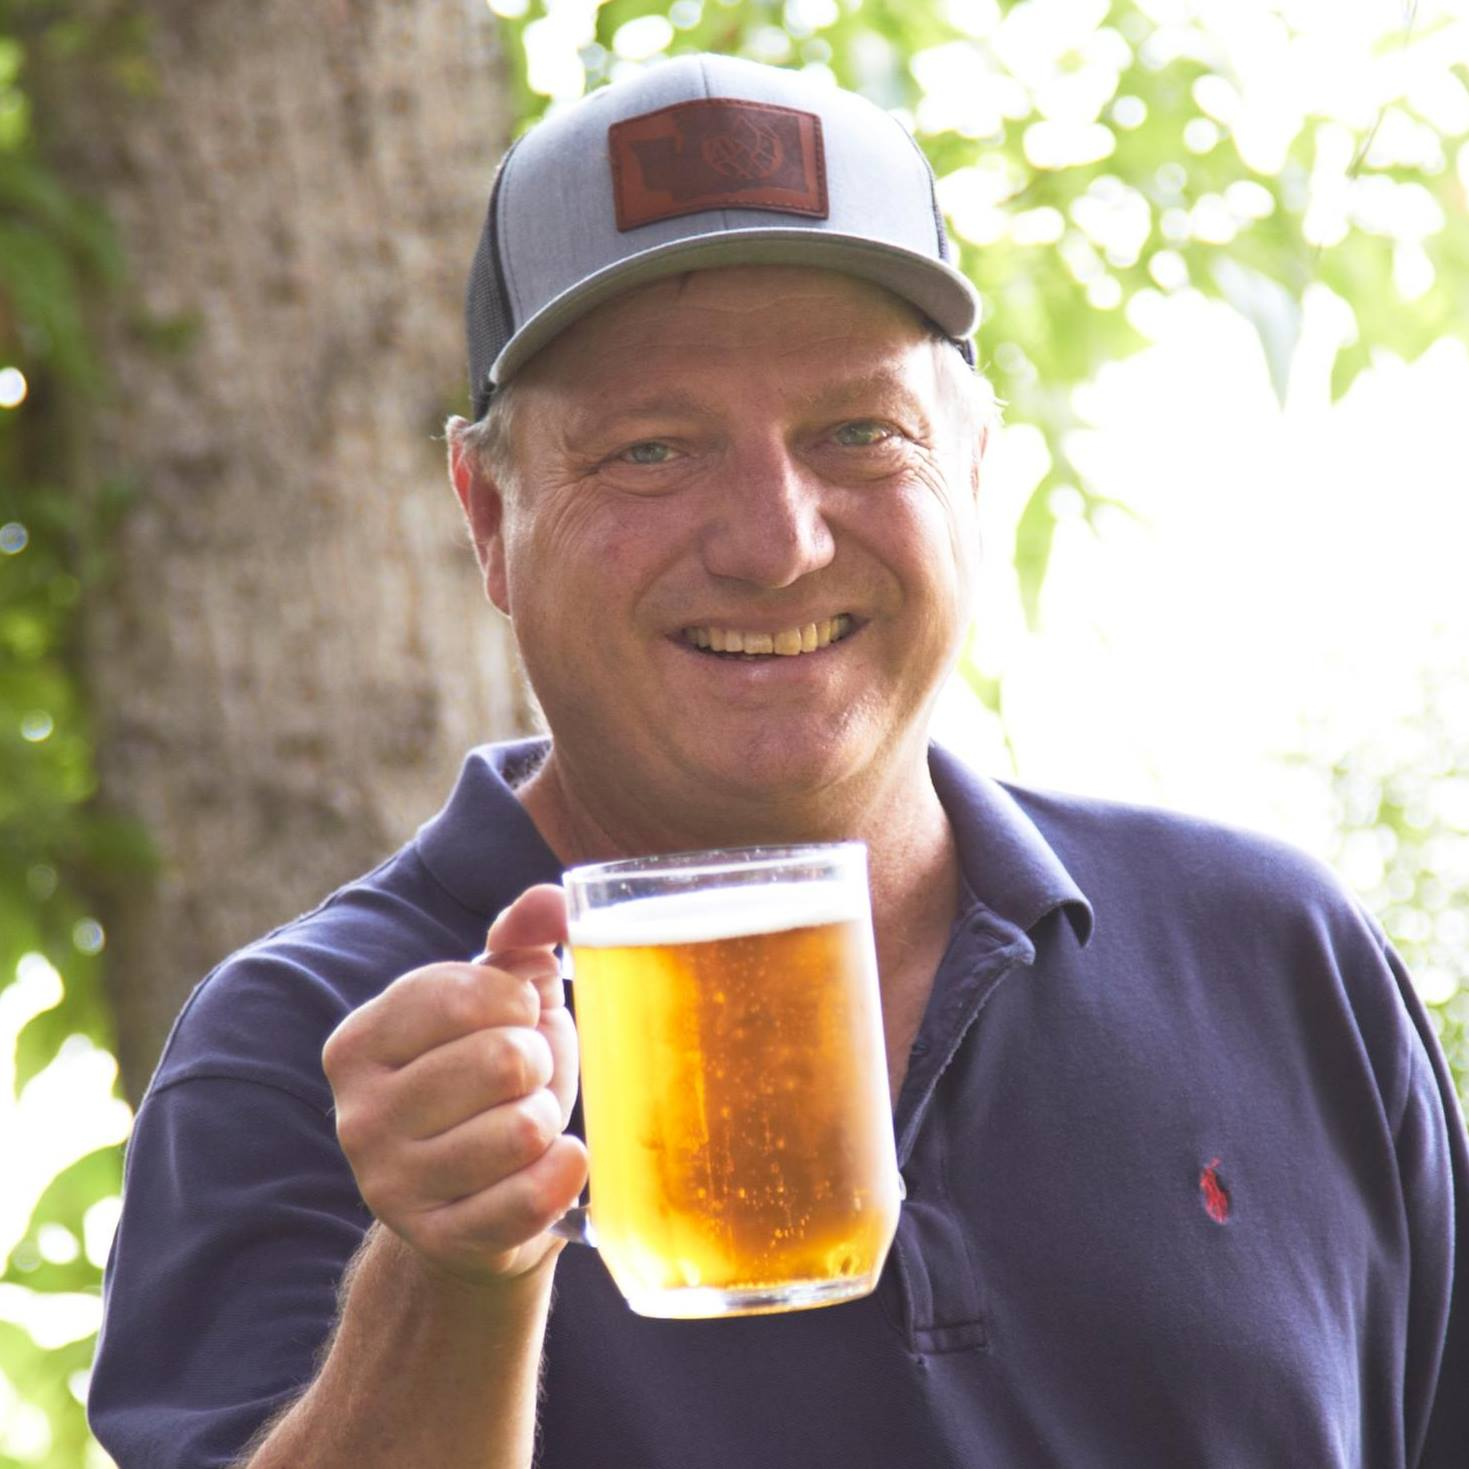 Kirk Richardson, author of Craft Beer Country - In Search of the Best Breweries from the South Pacific to the Pacific Coast